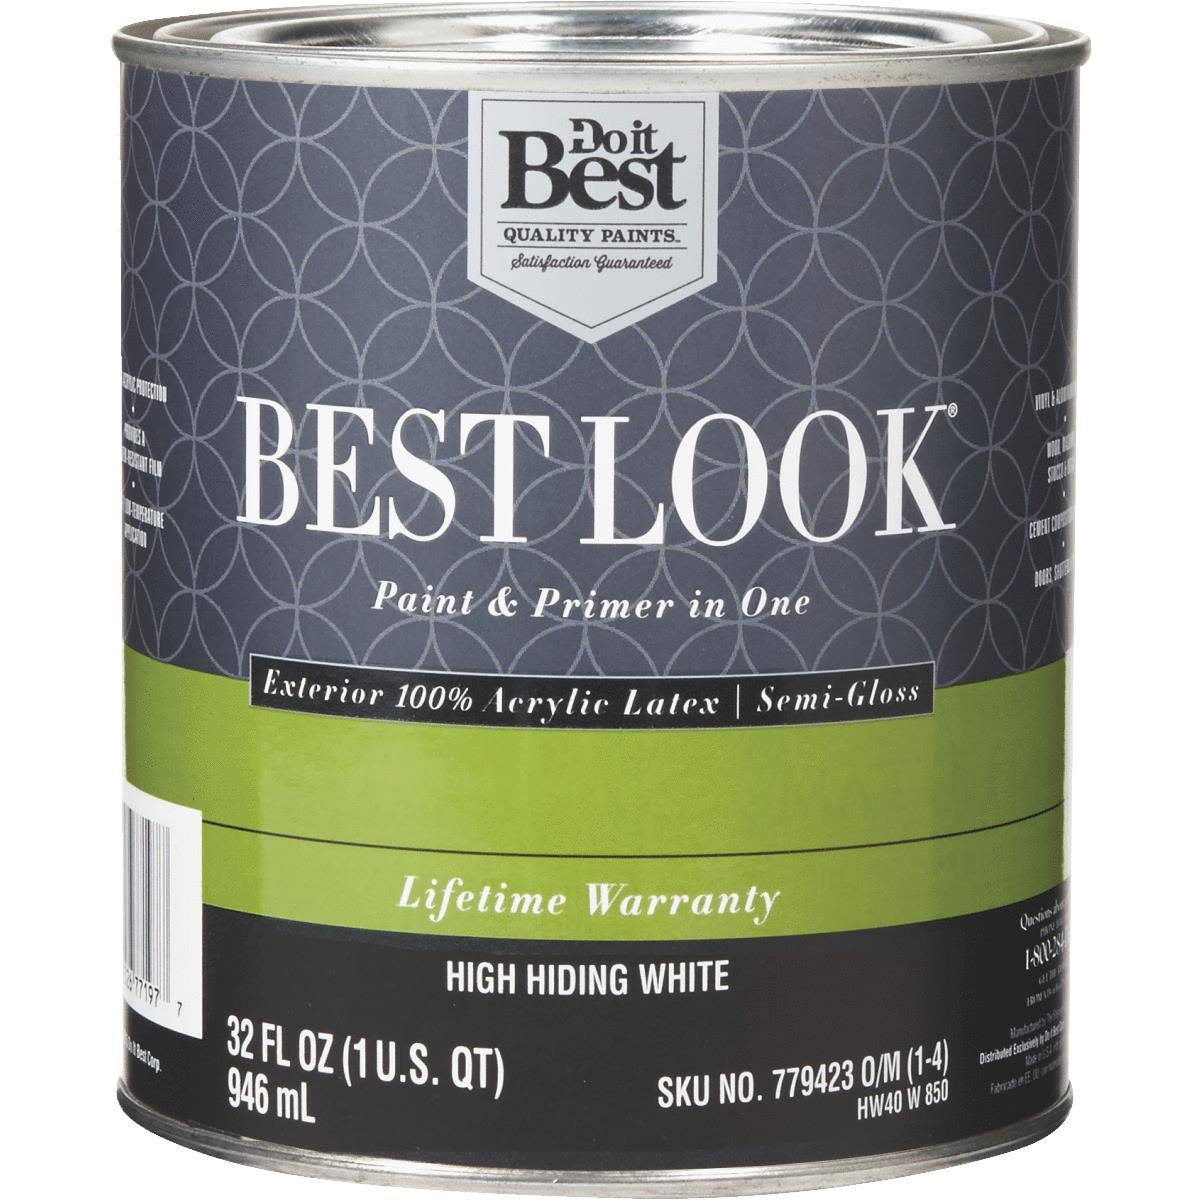 - HW40W0850-14 Best Look 100% Acrylic Latex Paint & Primer in One Semi-Gloss Exterior House Paint